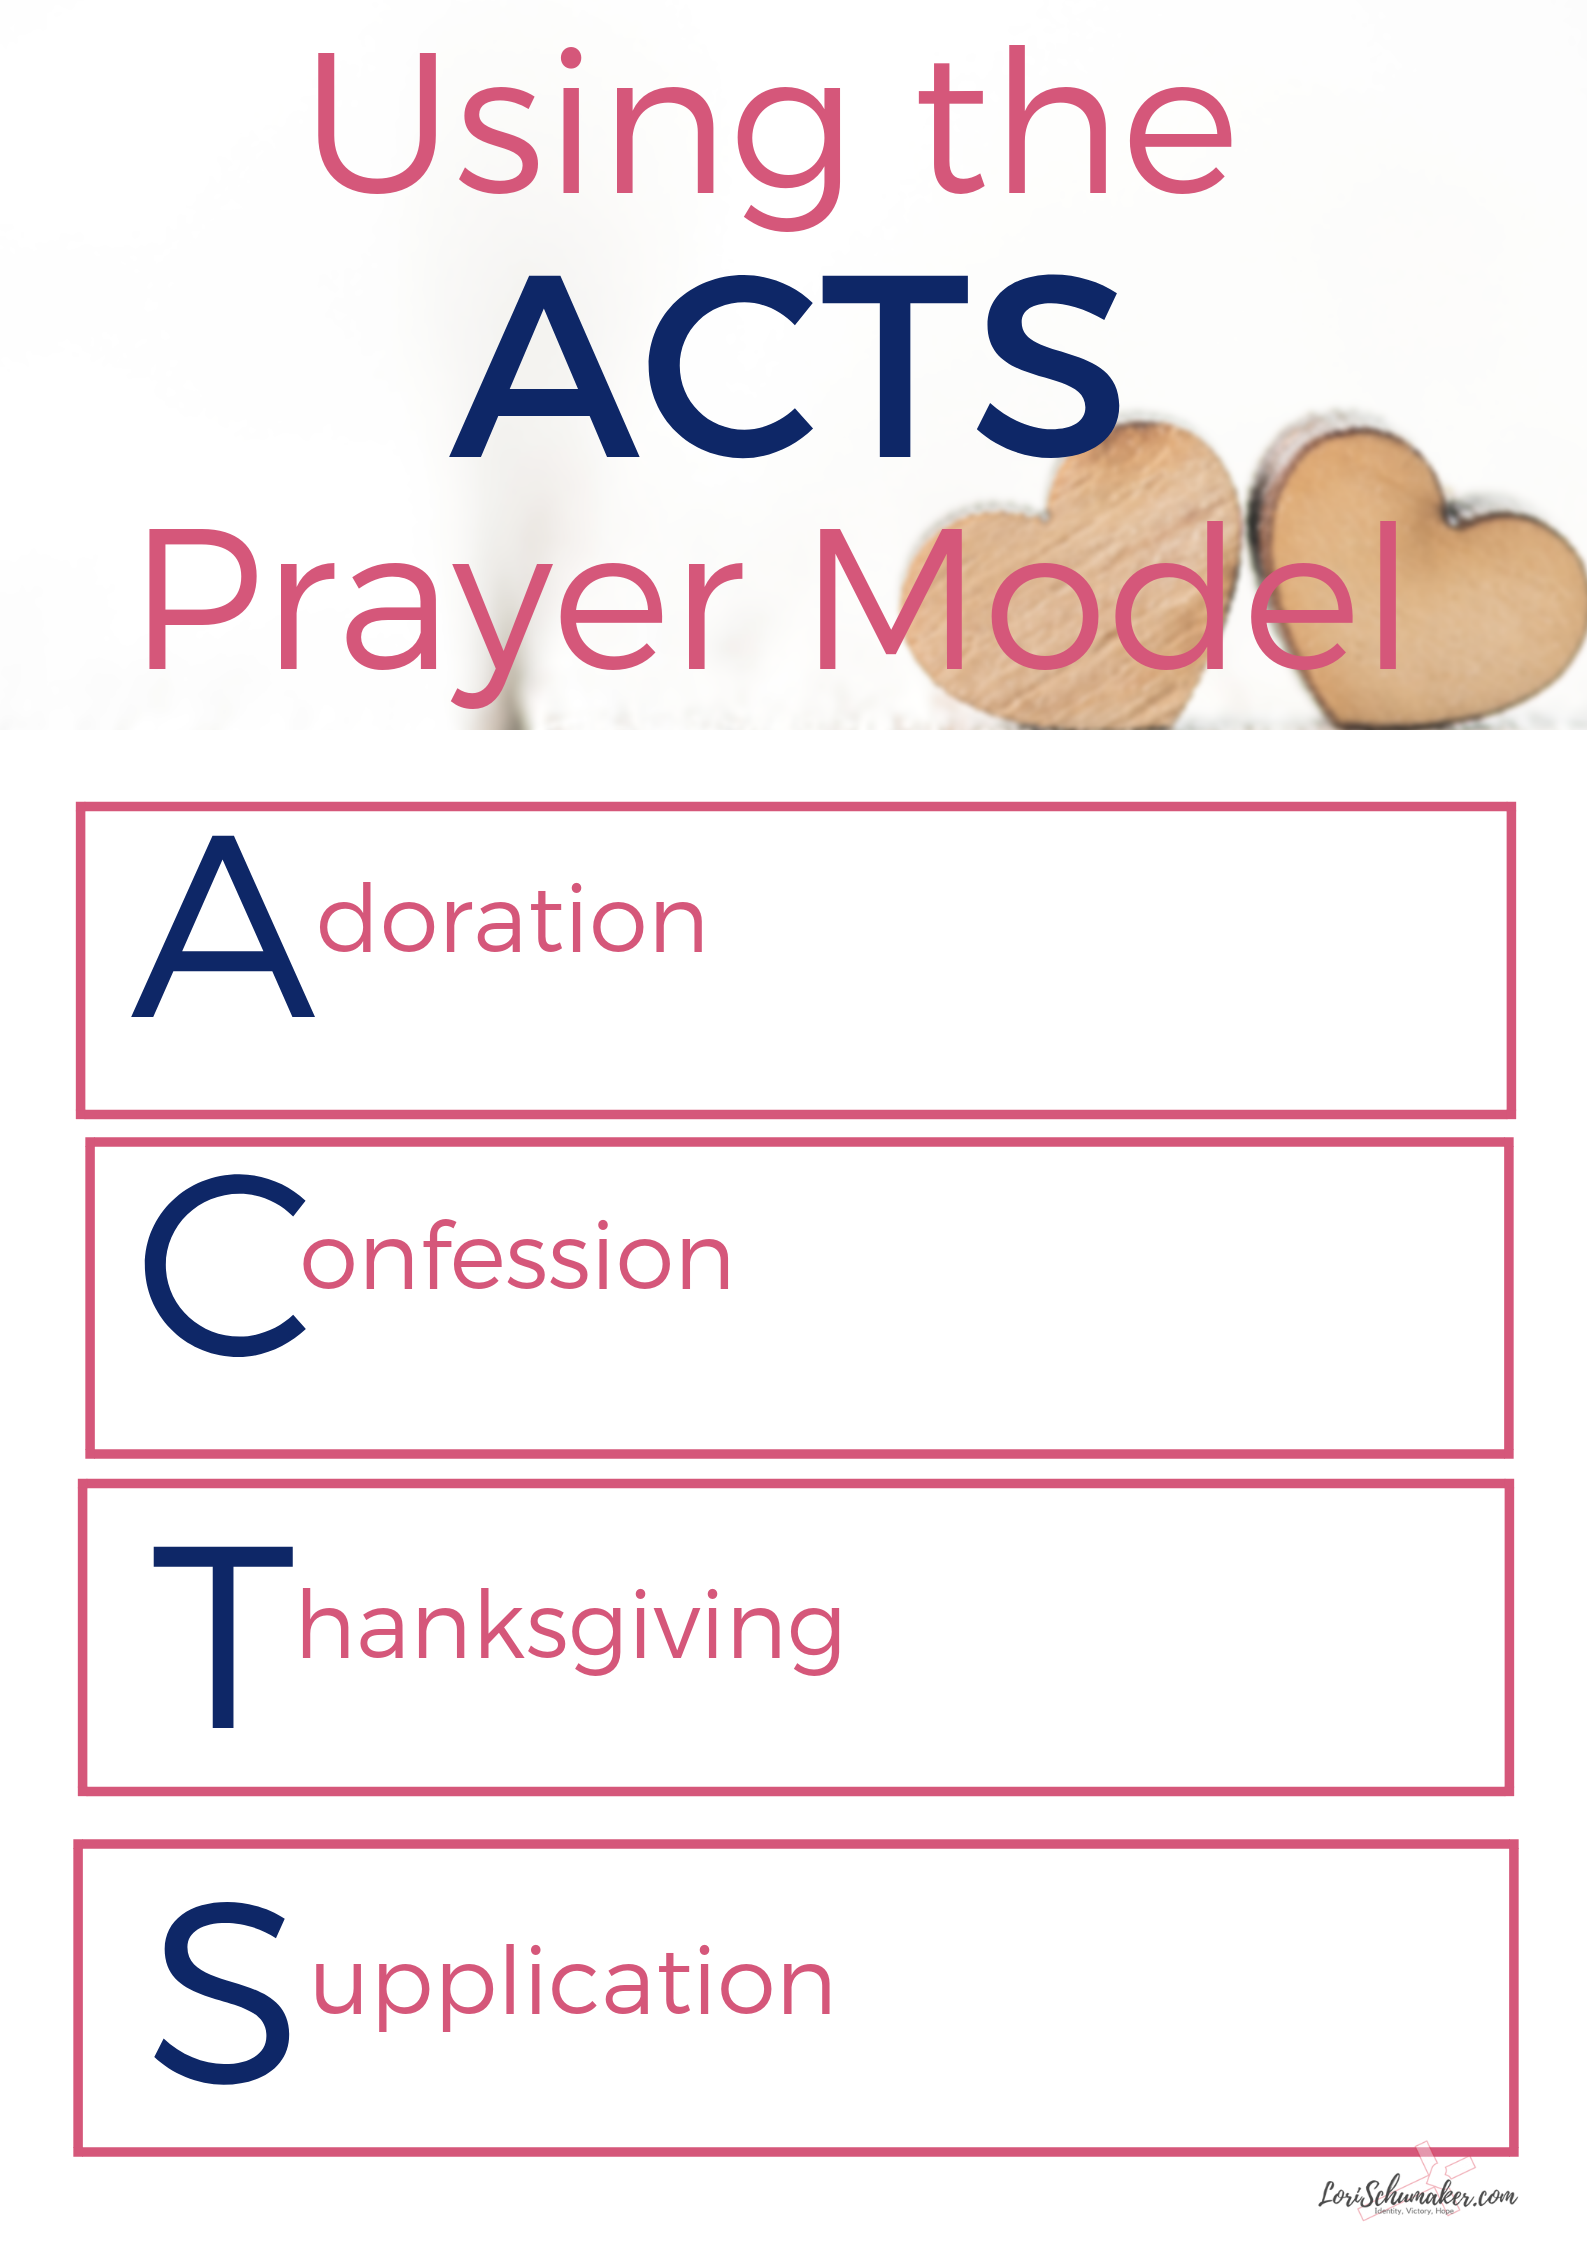 What Is The Acts Prayer Model And How Can It Help Me Pray